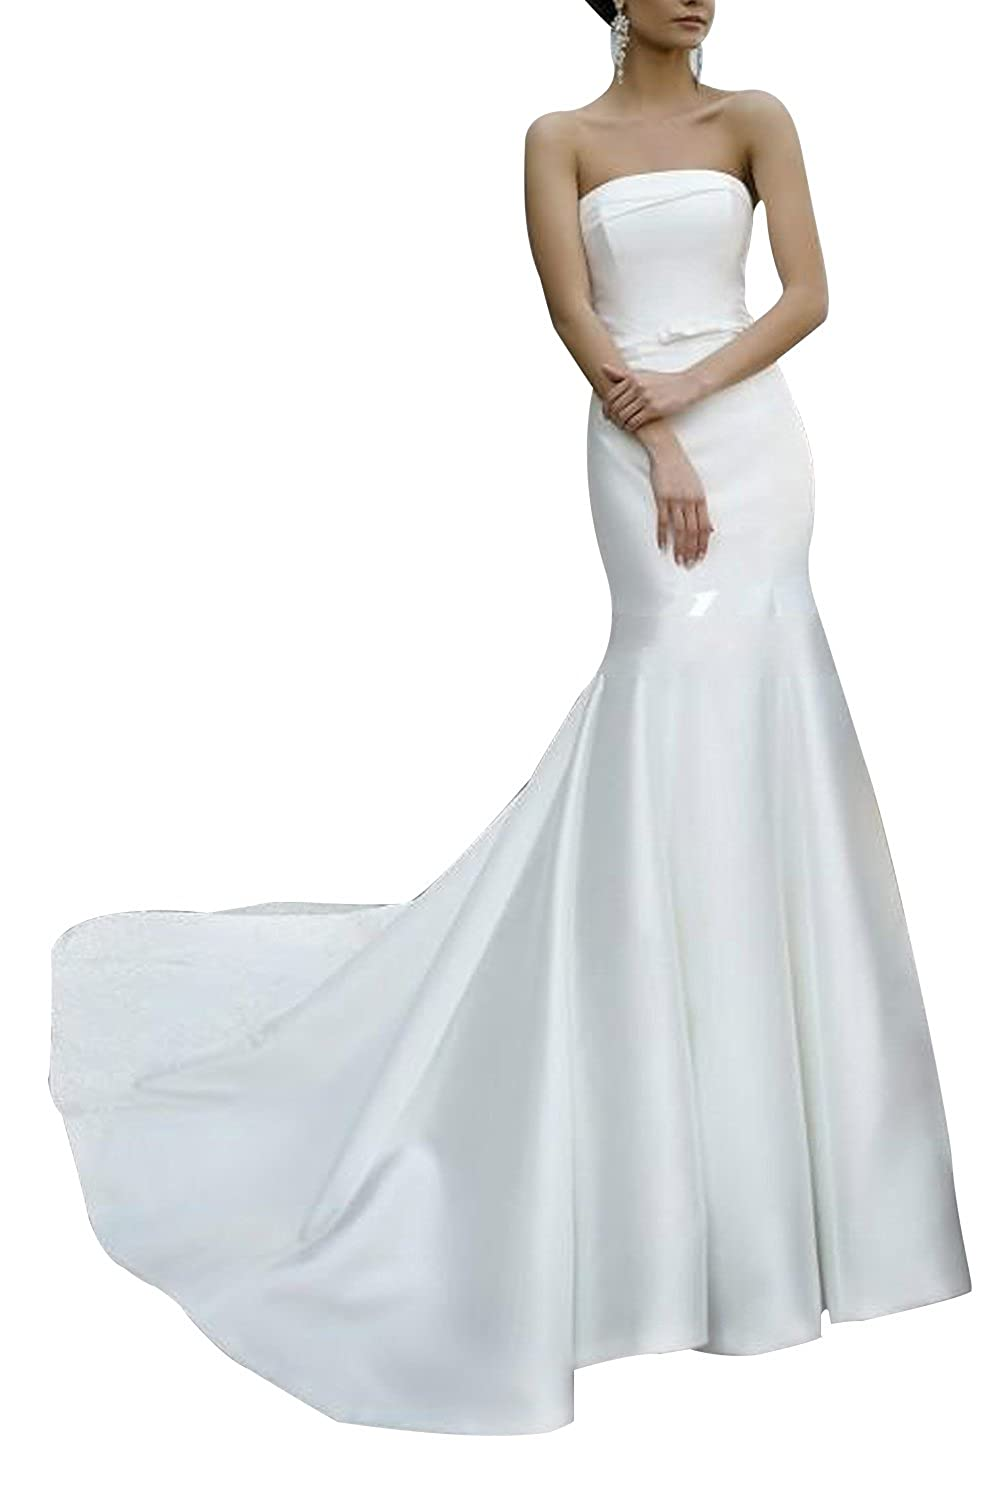 Dreamdress Women Strapless Mermaid Satin Train Wedding Dress Party